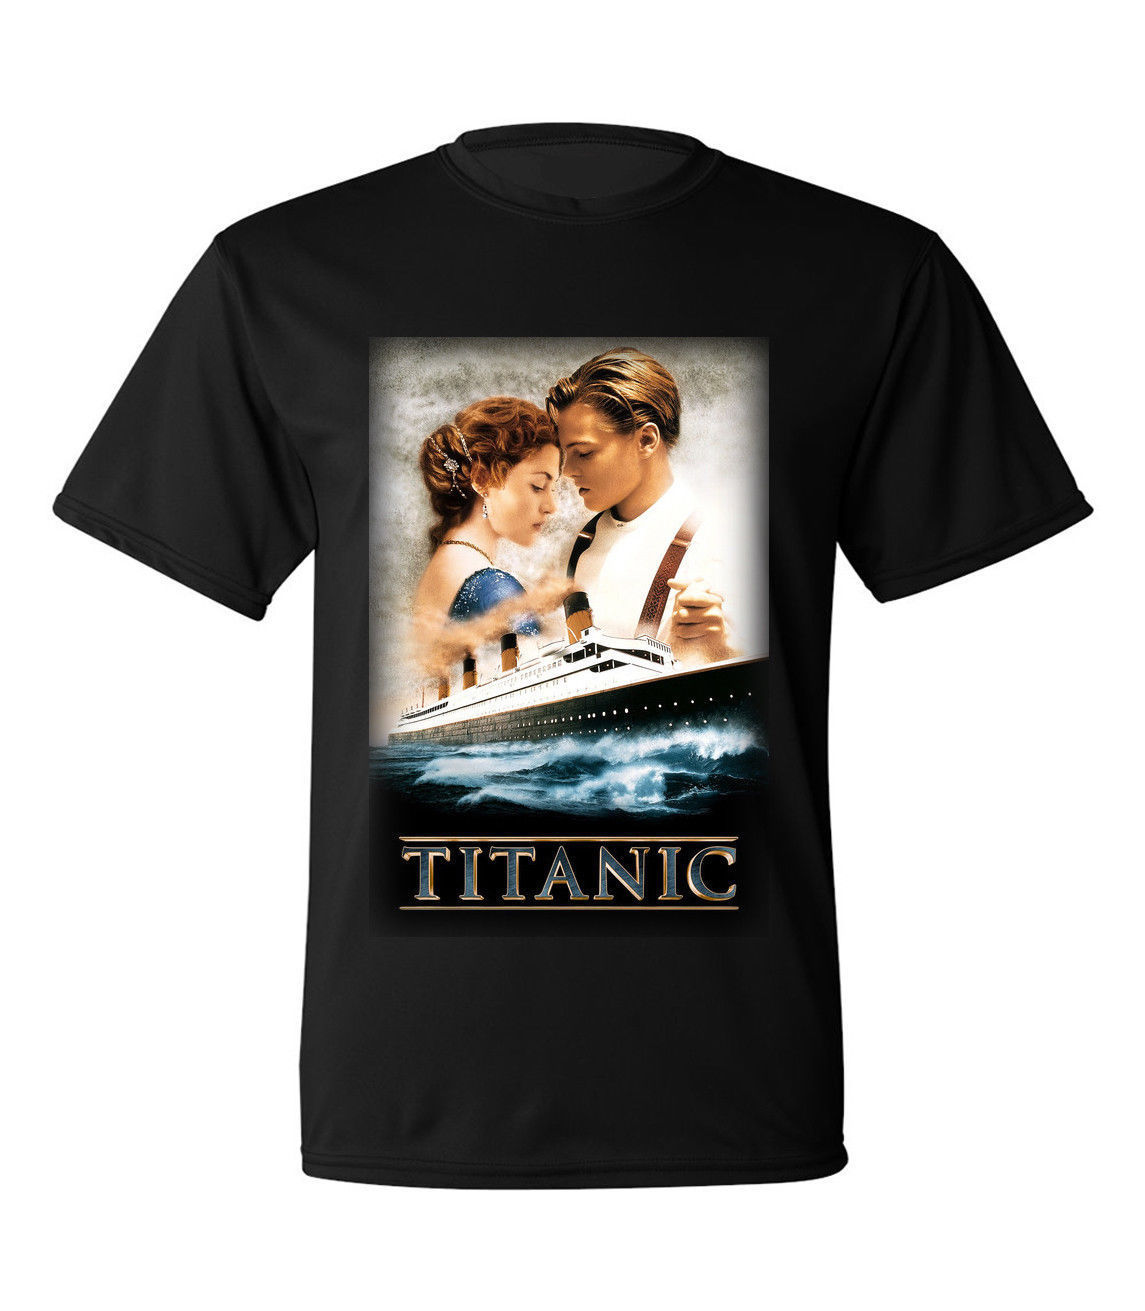 Vintage 1996 Titanic Movie Promo Black T Shirt Leonardo Dicaprio Sz S 2xl Cool Summer Tees T-shirt Men Summer